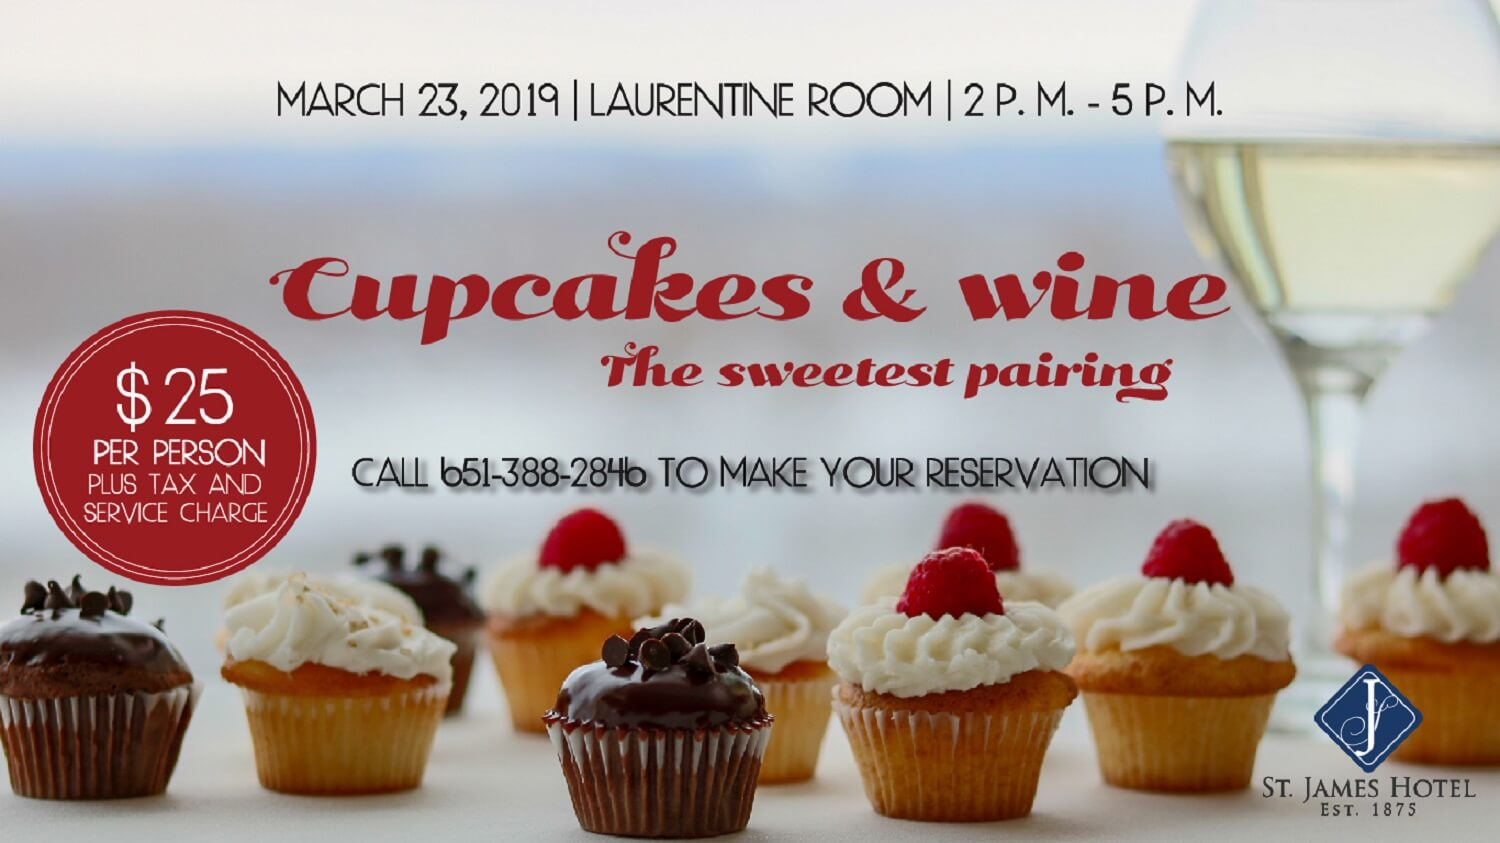 Cupcakes & Wine - The Sweetest Pairing - March 23, 2019 | Laurentine Room | 2 PM - 5 PM | Call 651-388-2846 | $25 per person plus tax and service charge